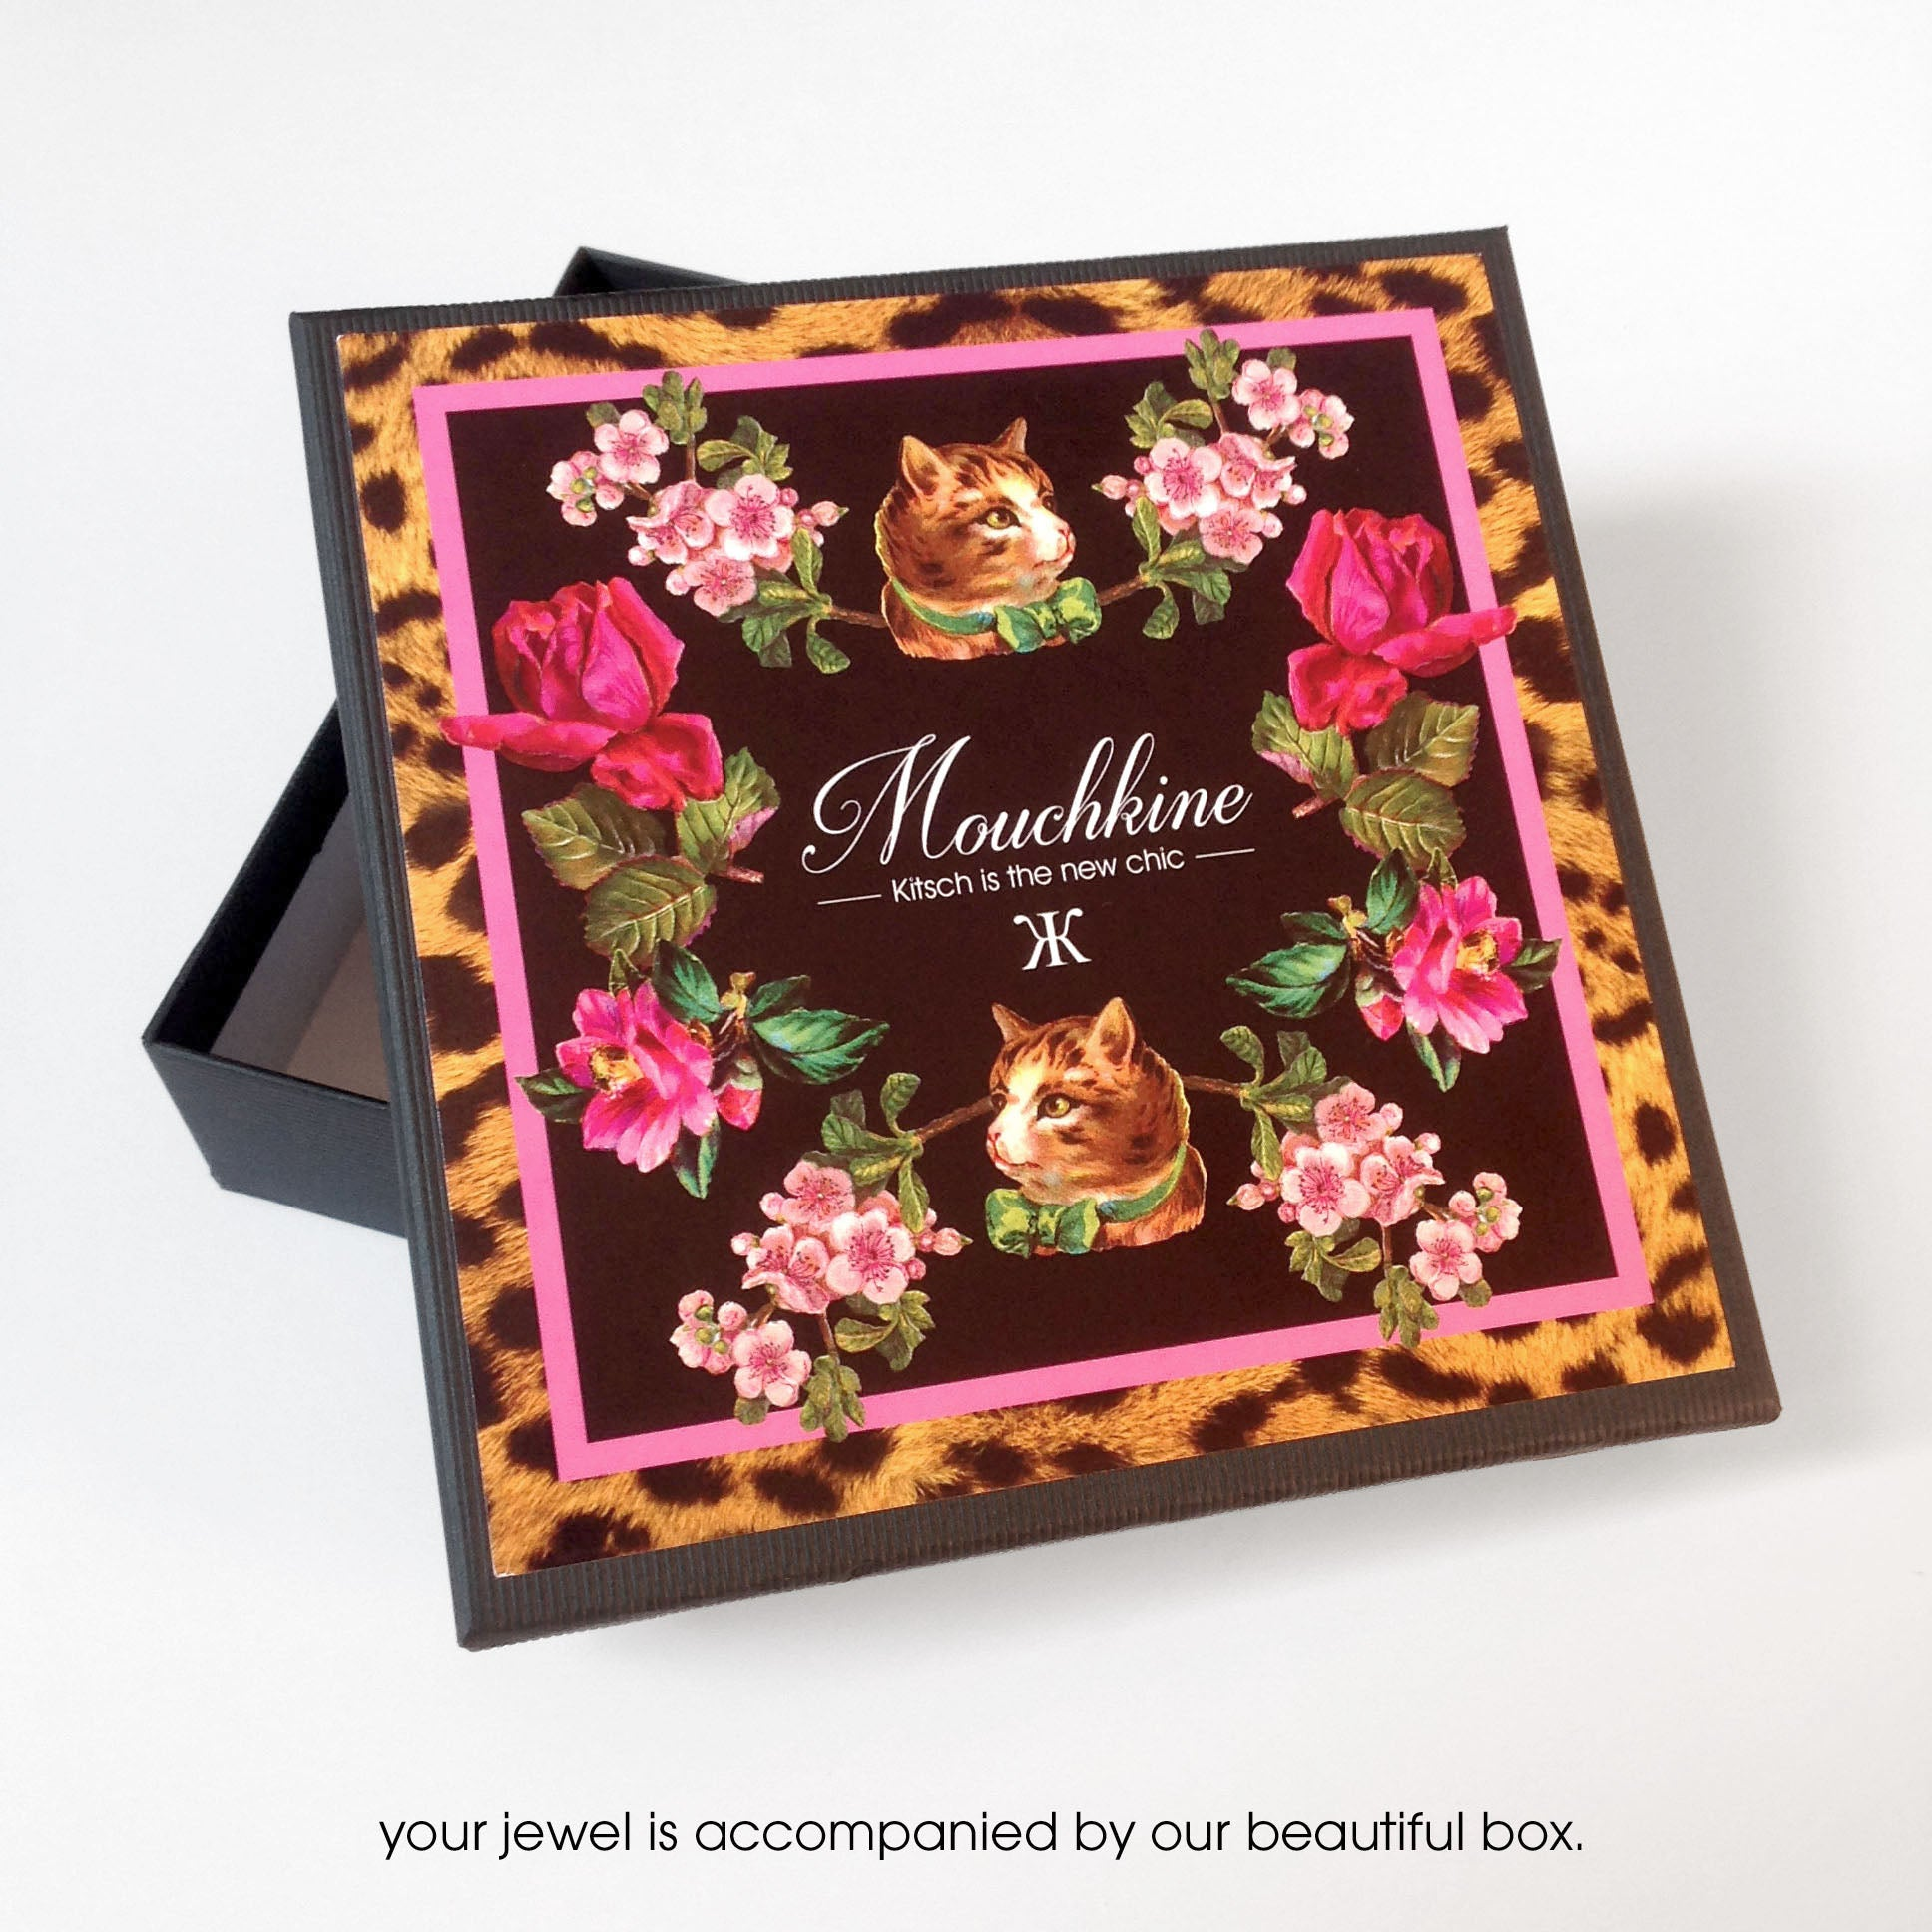 mouchkine jewelry beautiful luxury packaging made in France